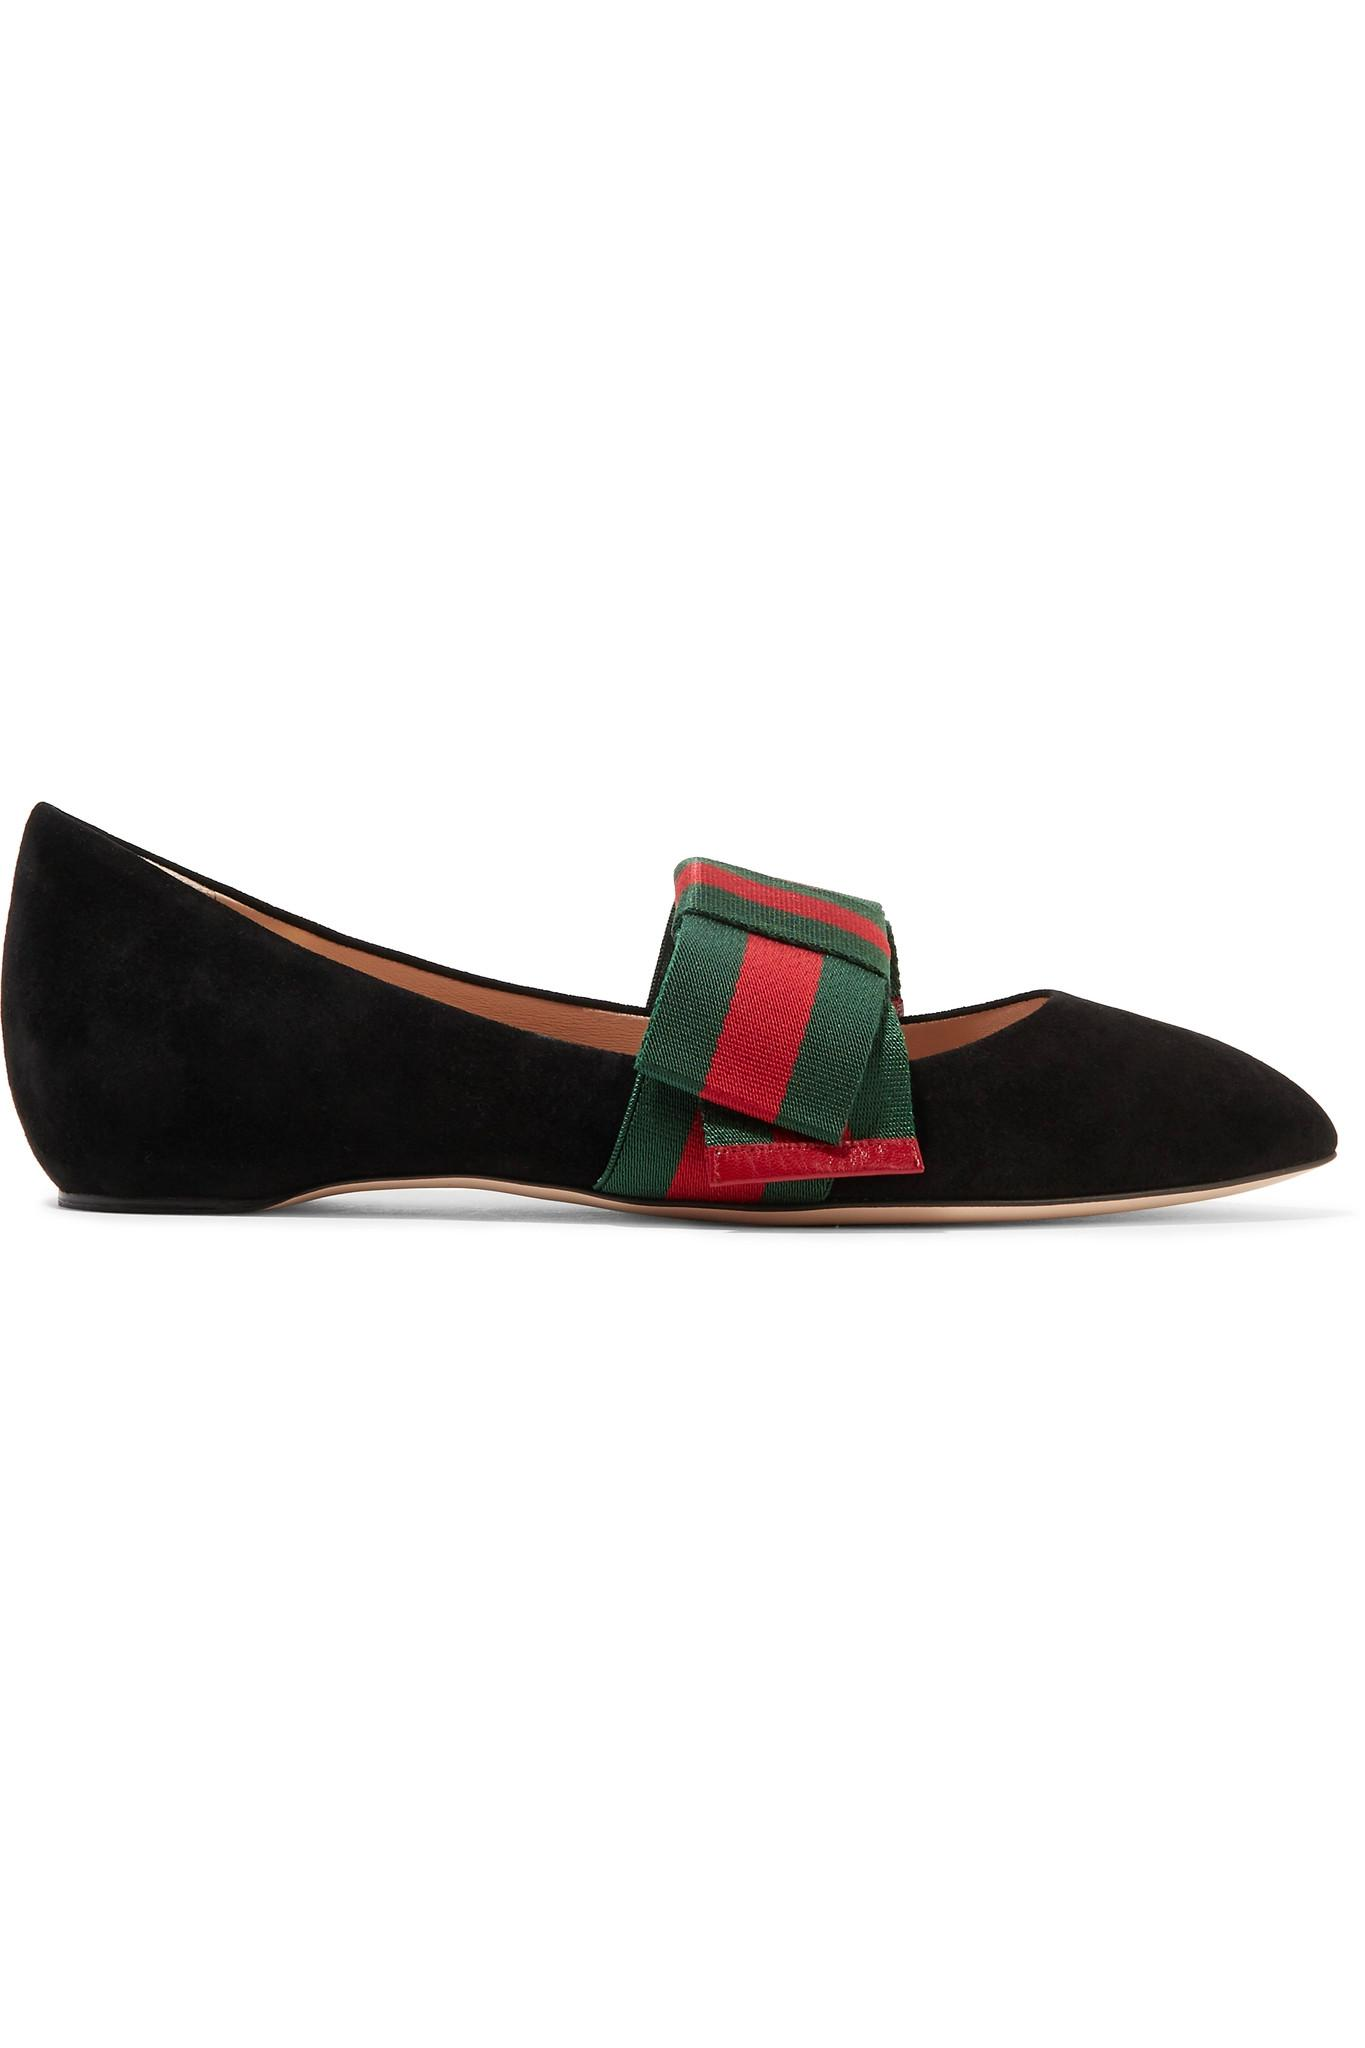 Gucci Bow-embellished Suede Point-toe Flats in Black - Lyst 76751bd778